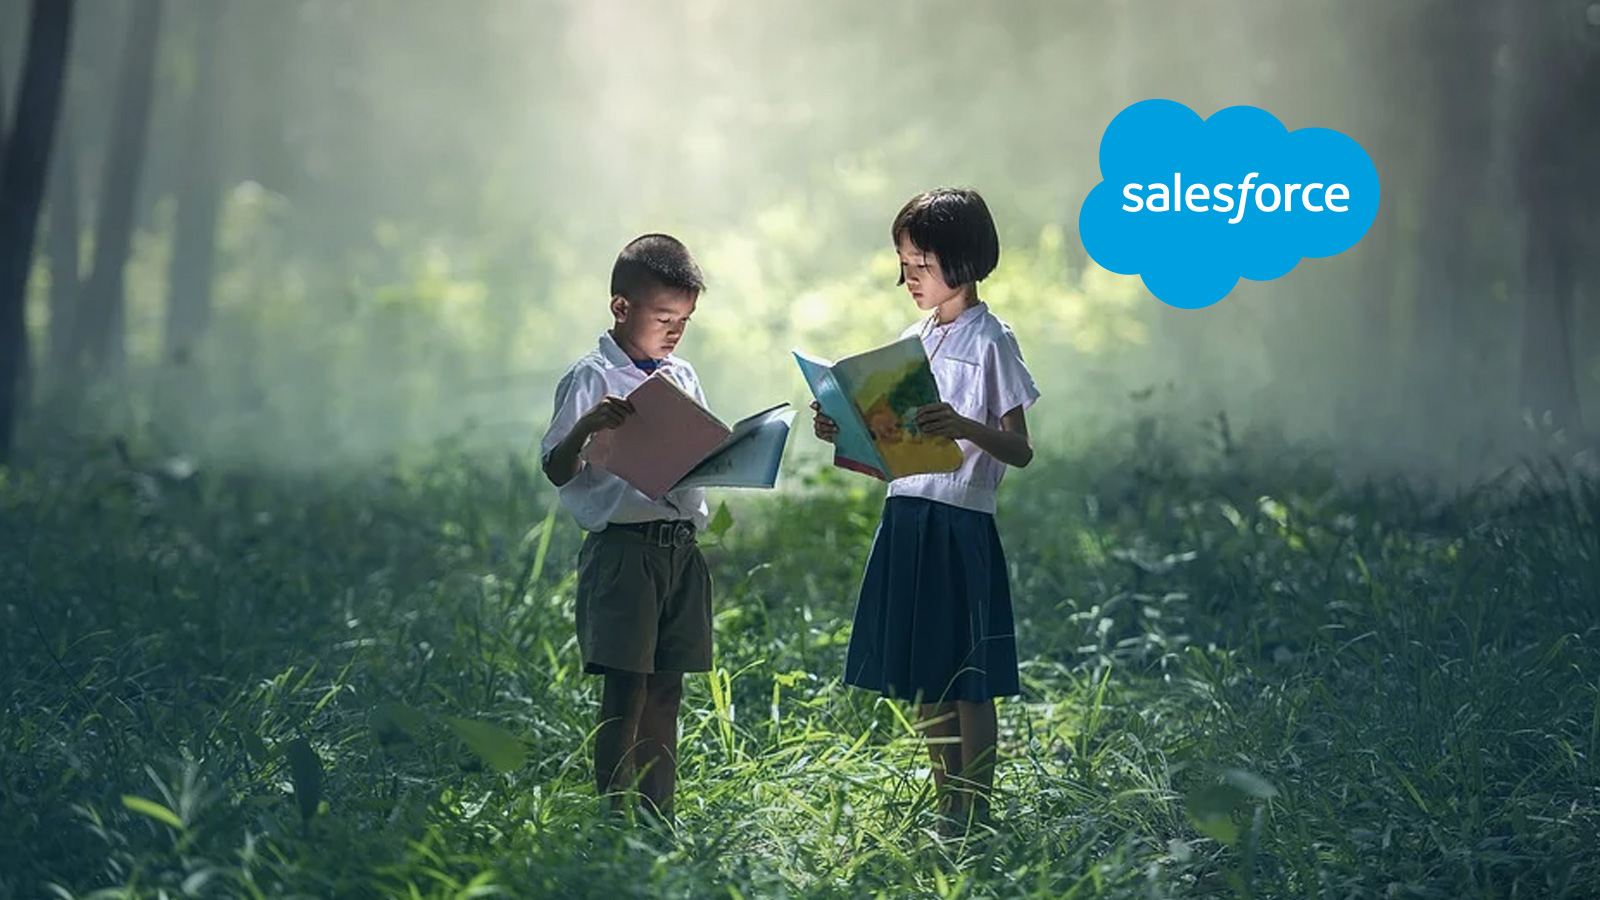 Apple and Salesforce Ignite Productivity and Learning on the Best Devices for Business